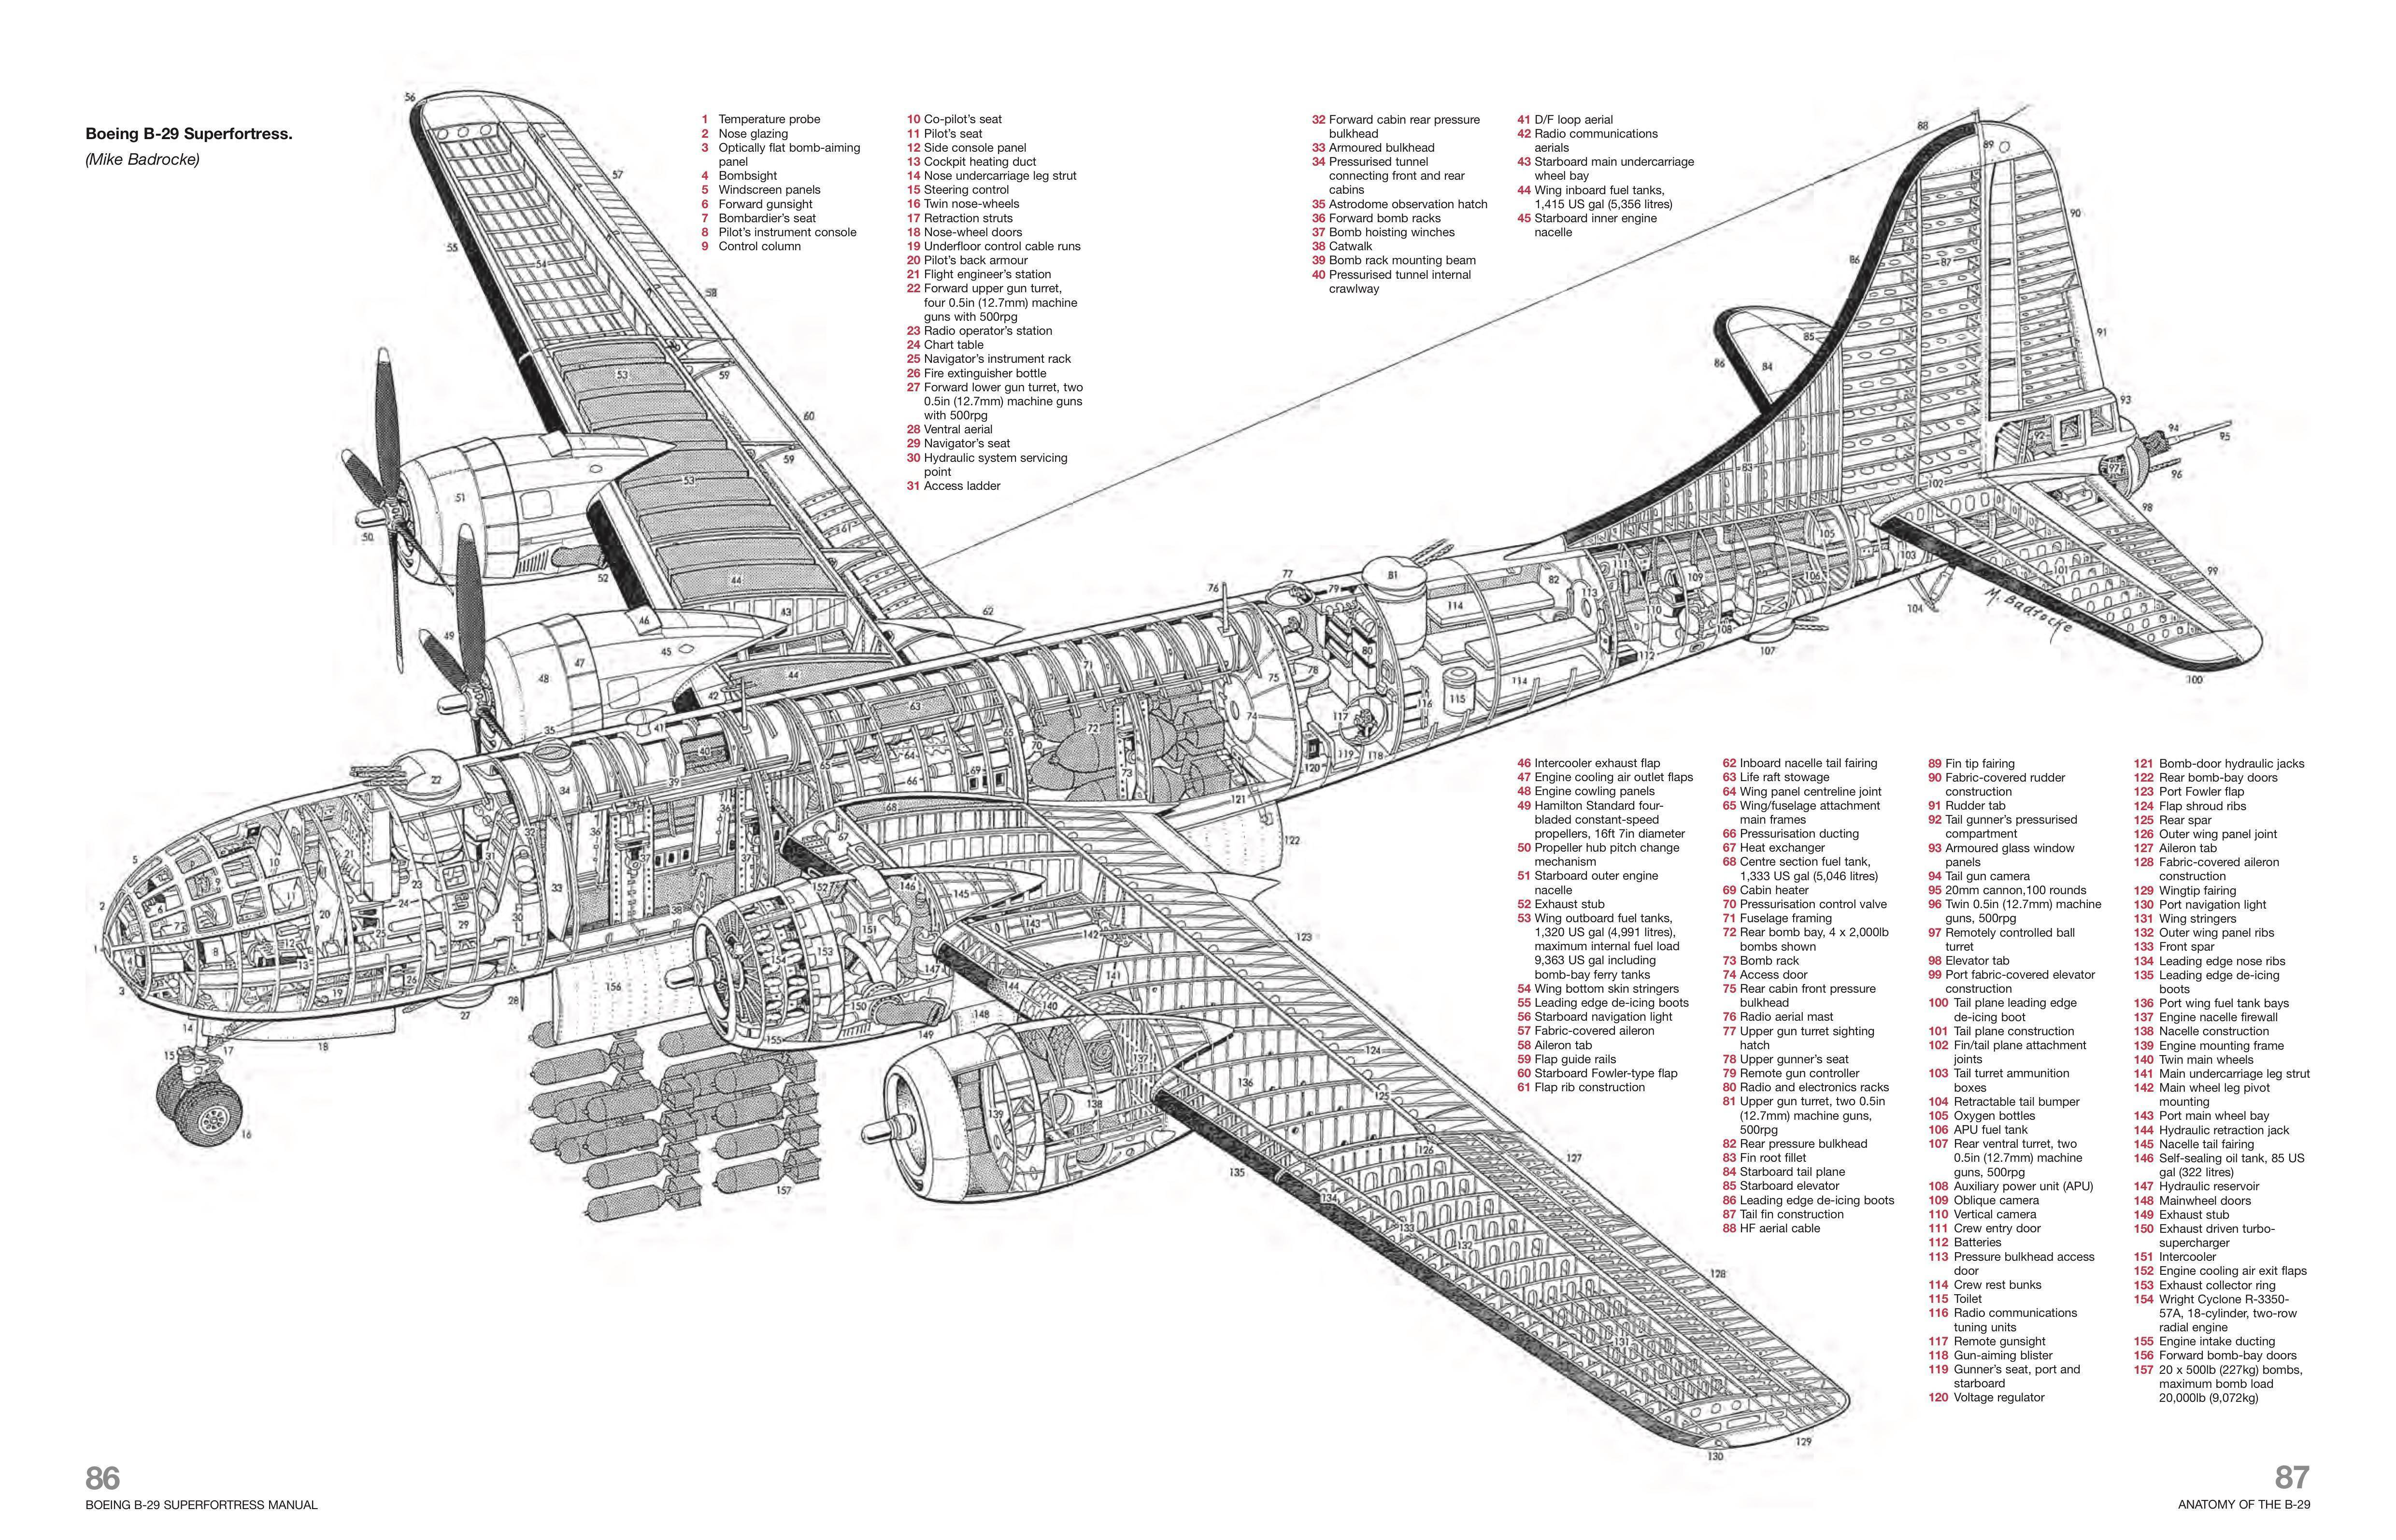 Boeing b-50 superfortress — википедия. что такое boeing b-50 superfortress